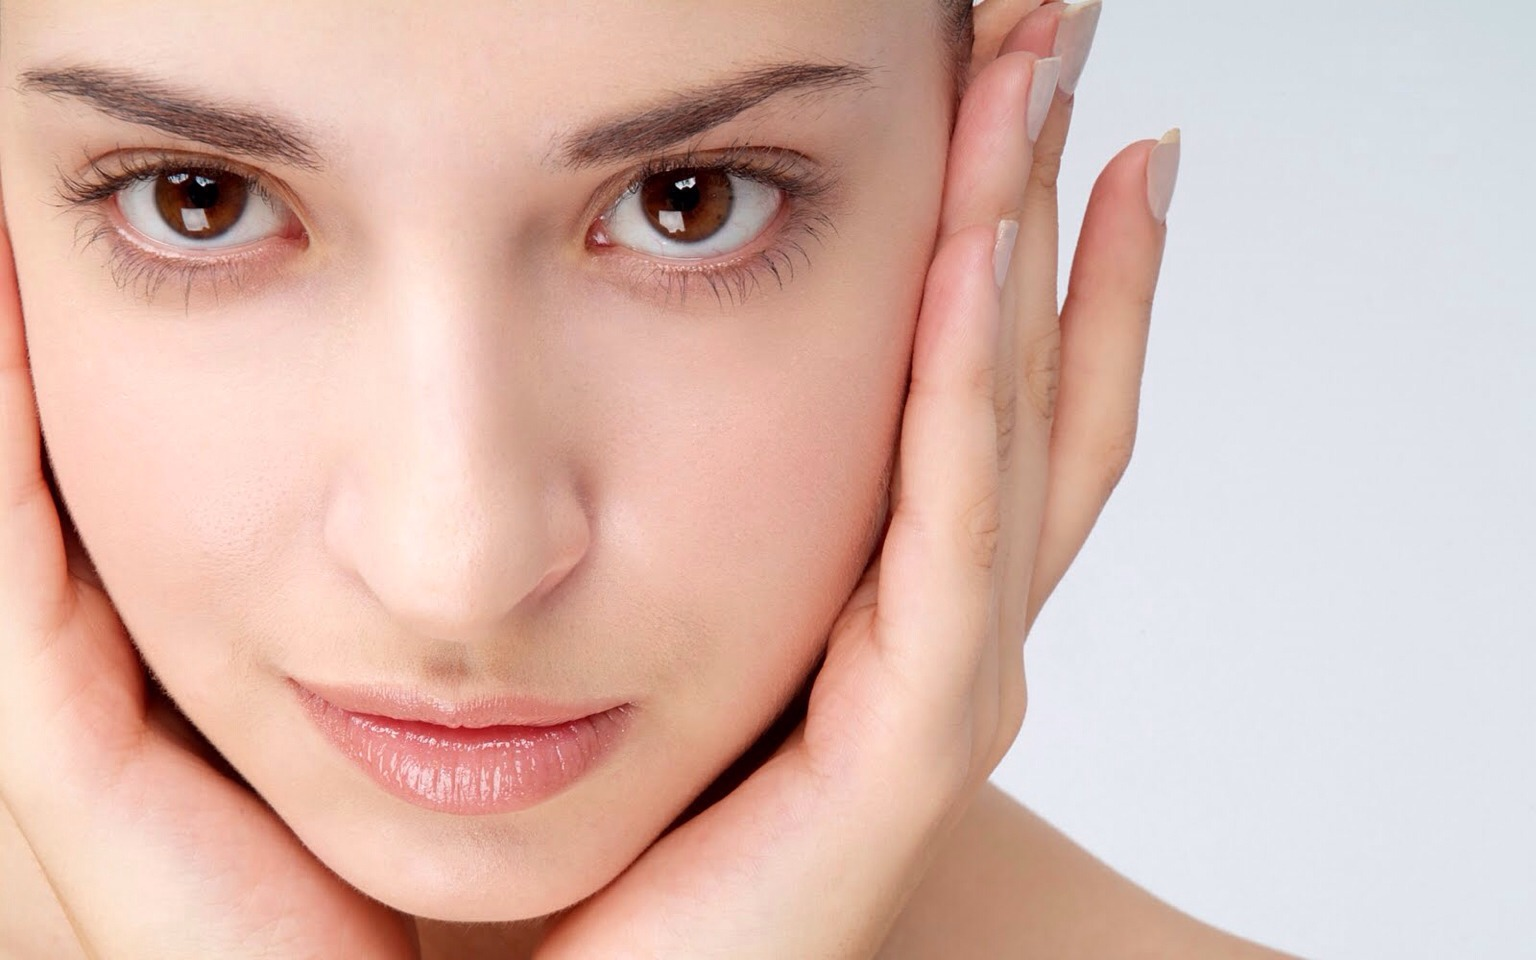 Keeping your skin hydrated means it'll be clearer as all the toxins are flushed out.